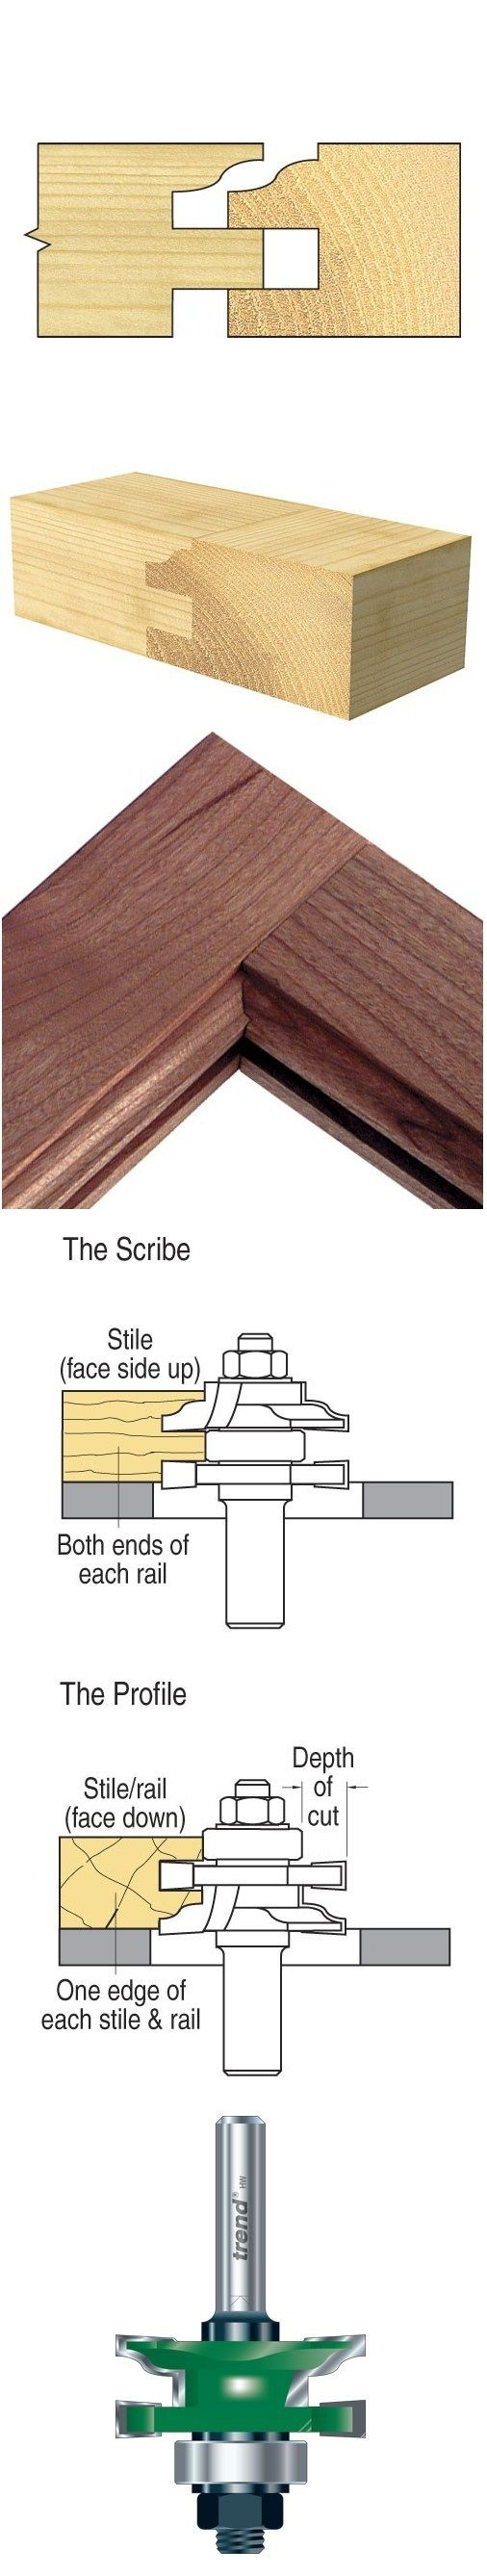 The classic method of producing cabinet panelled door and drawer fronts is made easy with these Profile Scriber sets. With the combination type, components are re-arranged on the arbor to cut the profile or the scribe. * Cuts both parts of the joint by reassembly of the tool......continue reading.... #Profile #scriber #ogee set radius 4mm..... http://www.woodfordtooling.com/craftpro-router-cutters/profile-scribers/ogee-combination-set/profile-scriber-ogee-set-radius-4mm.html